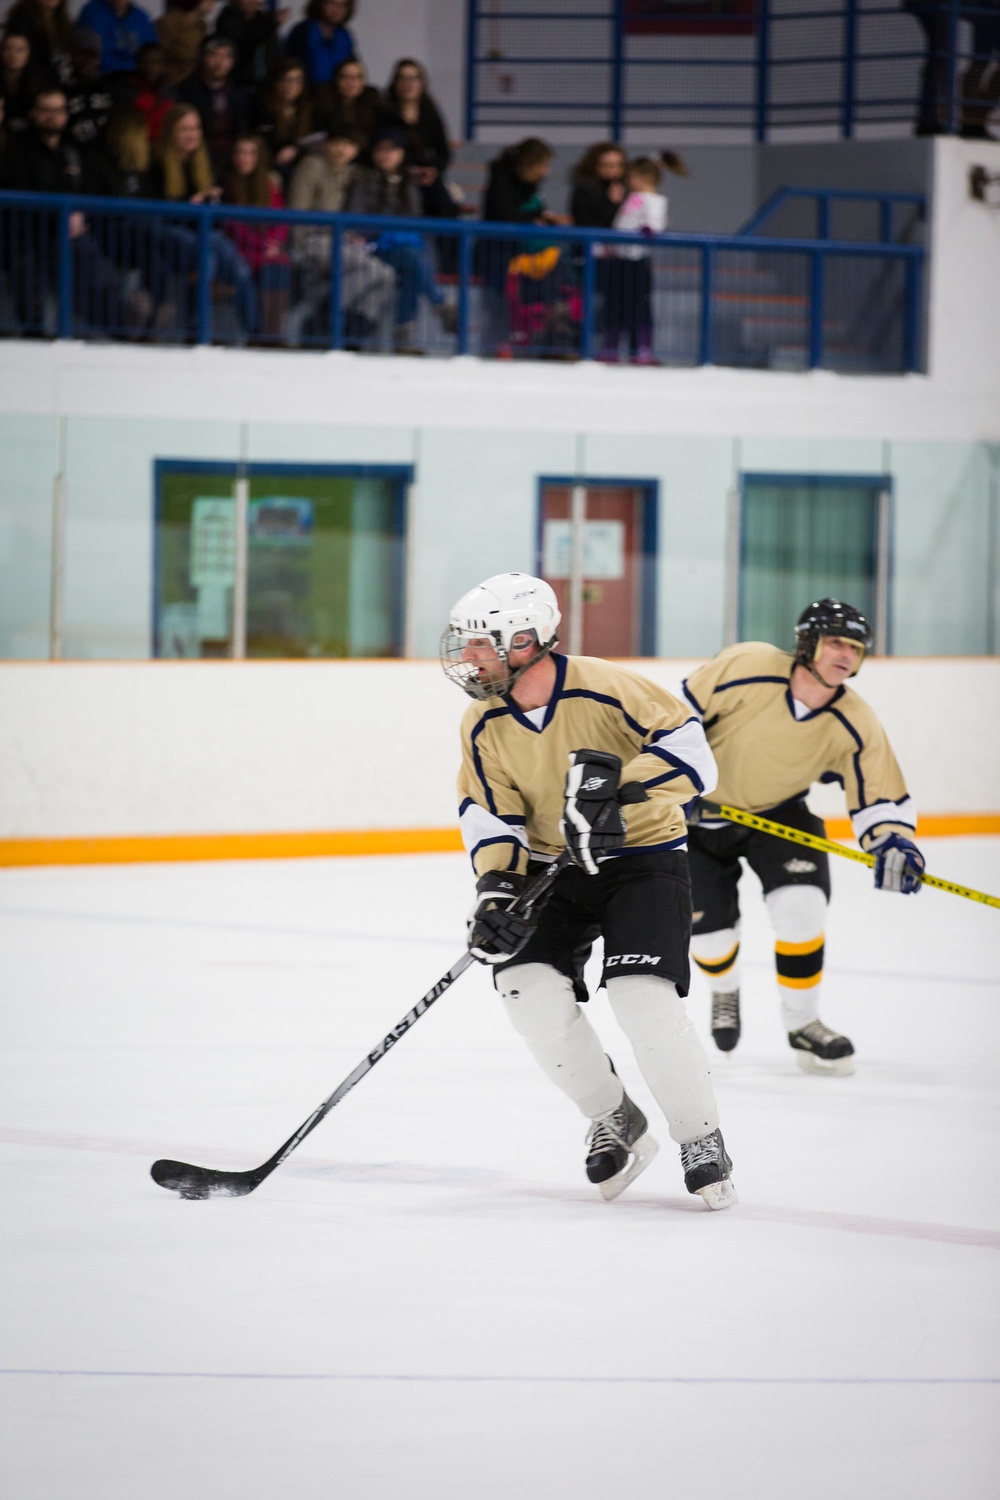 GrenfellCharityHockeyGame2016-April5-2016-55.jpg